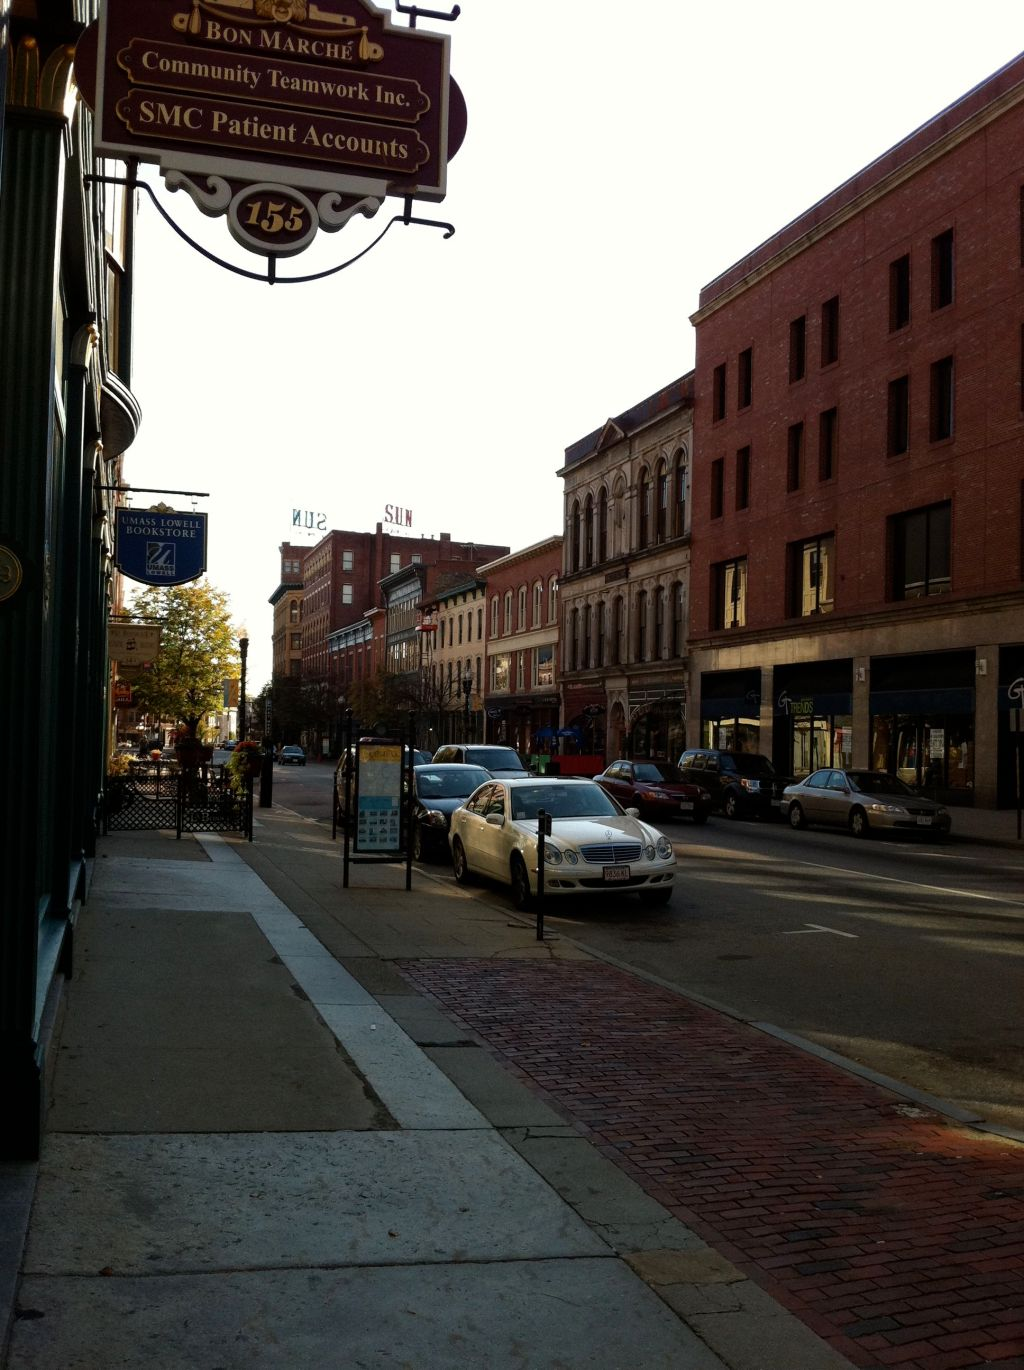 Merrimack Street - Lowell - in Fall 2011.  Pollard's was once housed in the brick building at the immediate right of the photograph.